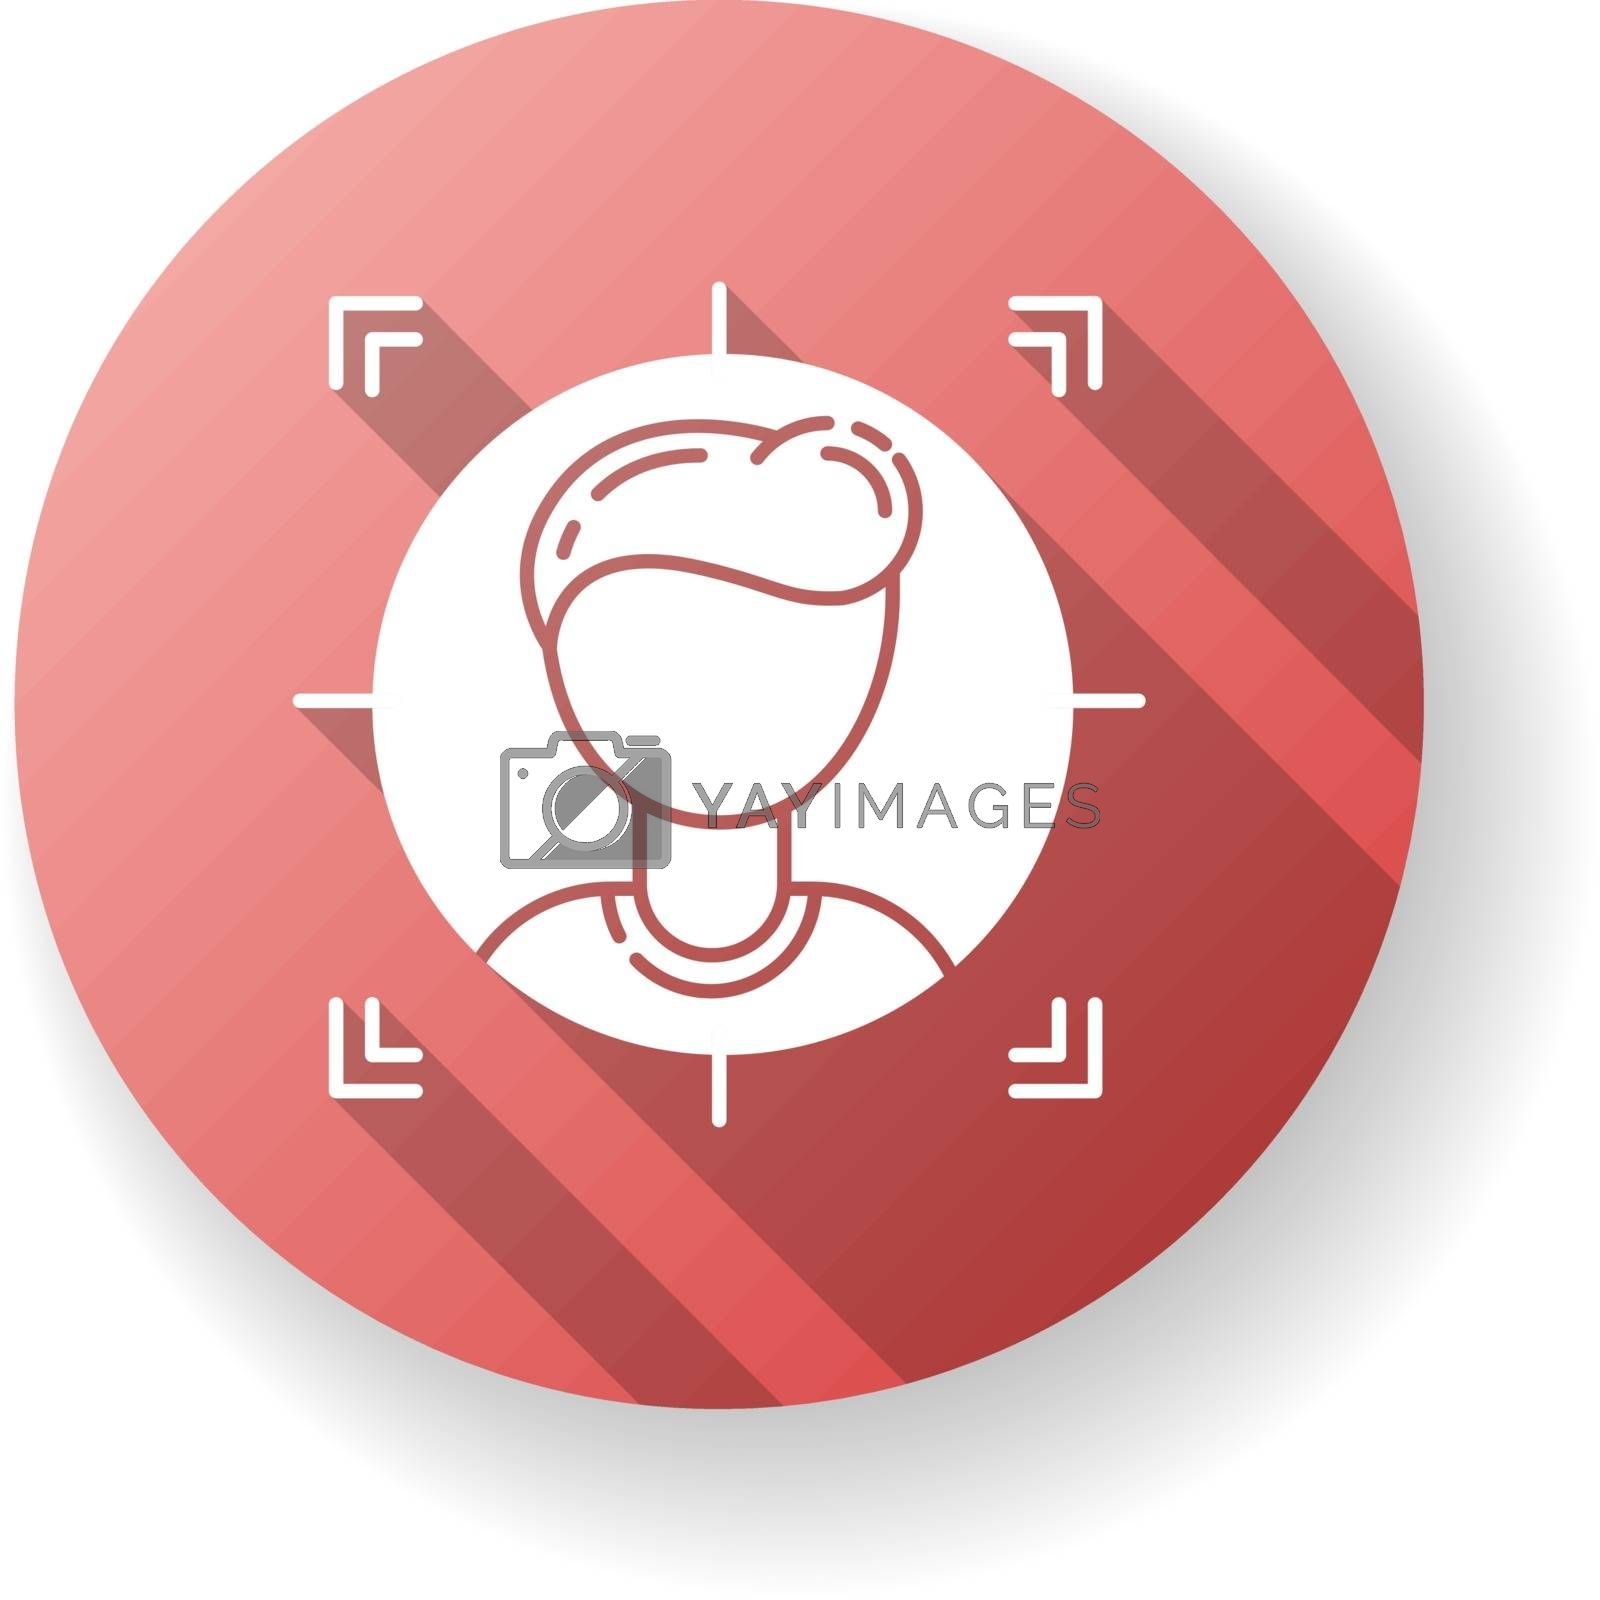 Target audience red flat design long shadow glyph icon. Analyzing client. Career in company. Search for corporate employee. Lead generation. Hire for position. Silhouette RGB color illustration